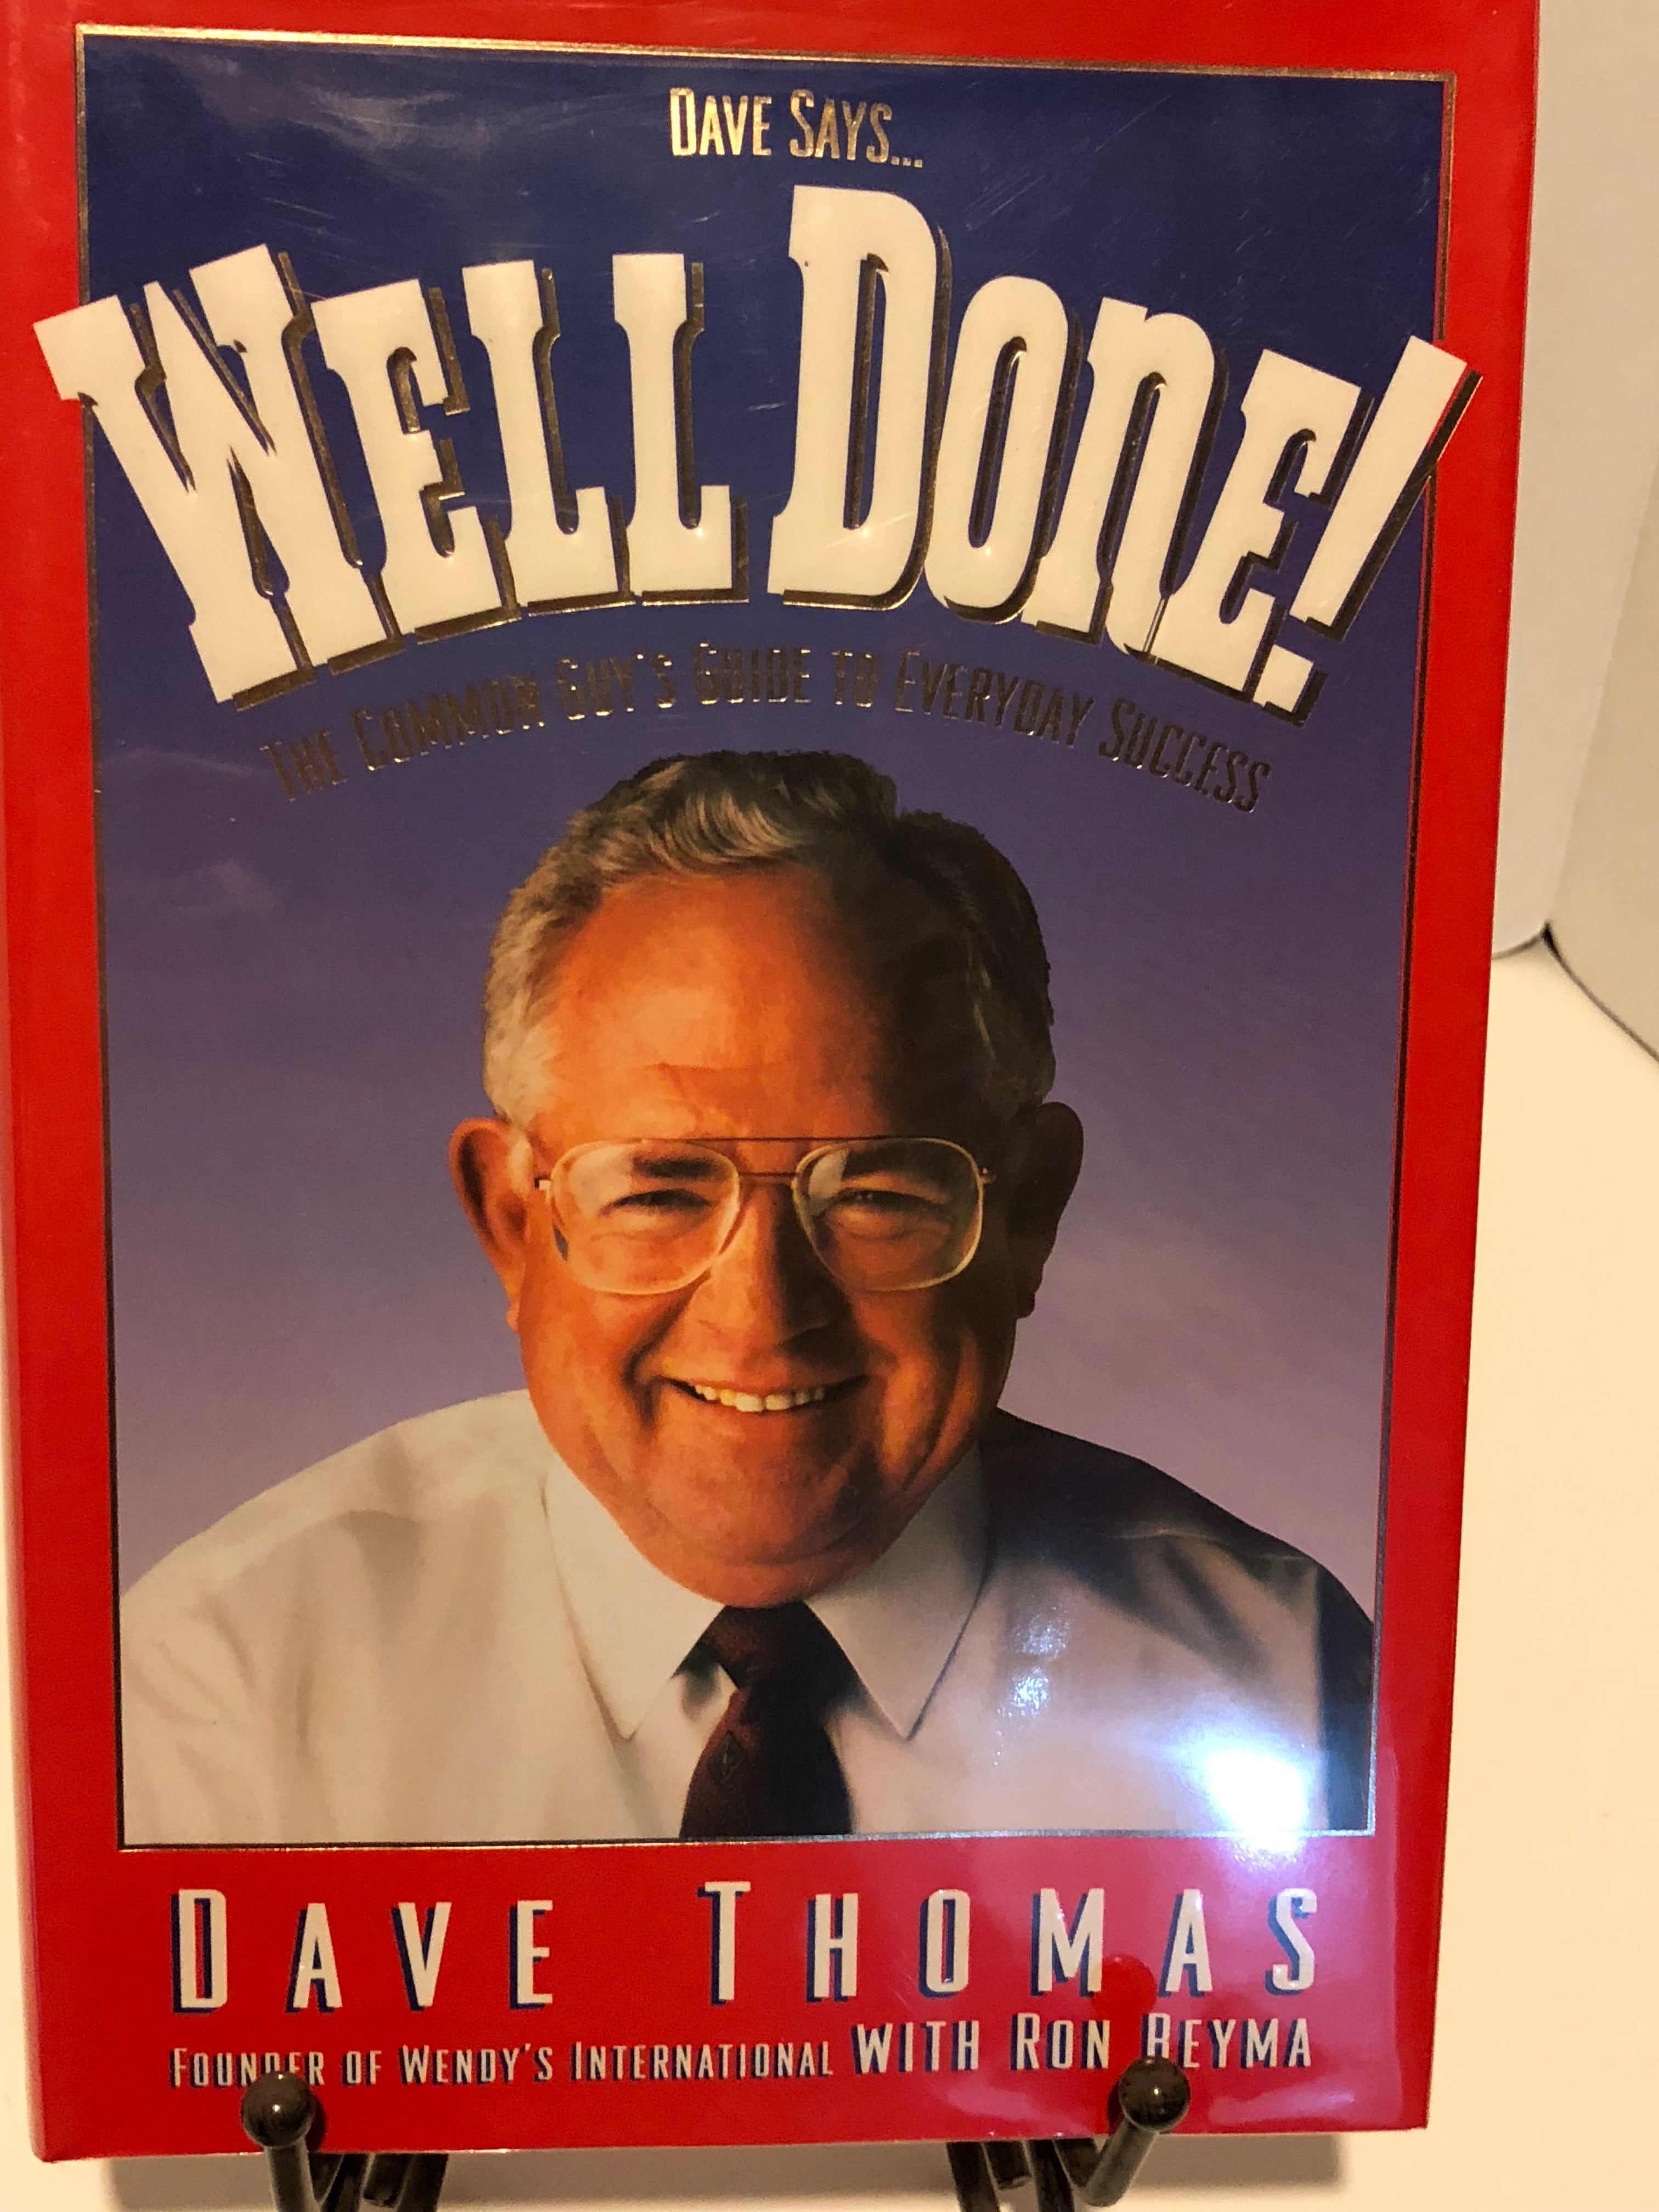 Dave Says...Well Done!: The Common Guy's Guide to Everyday Success